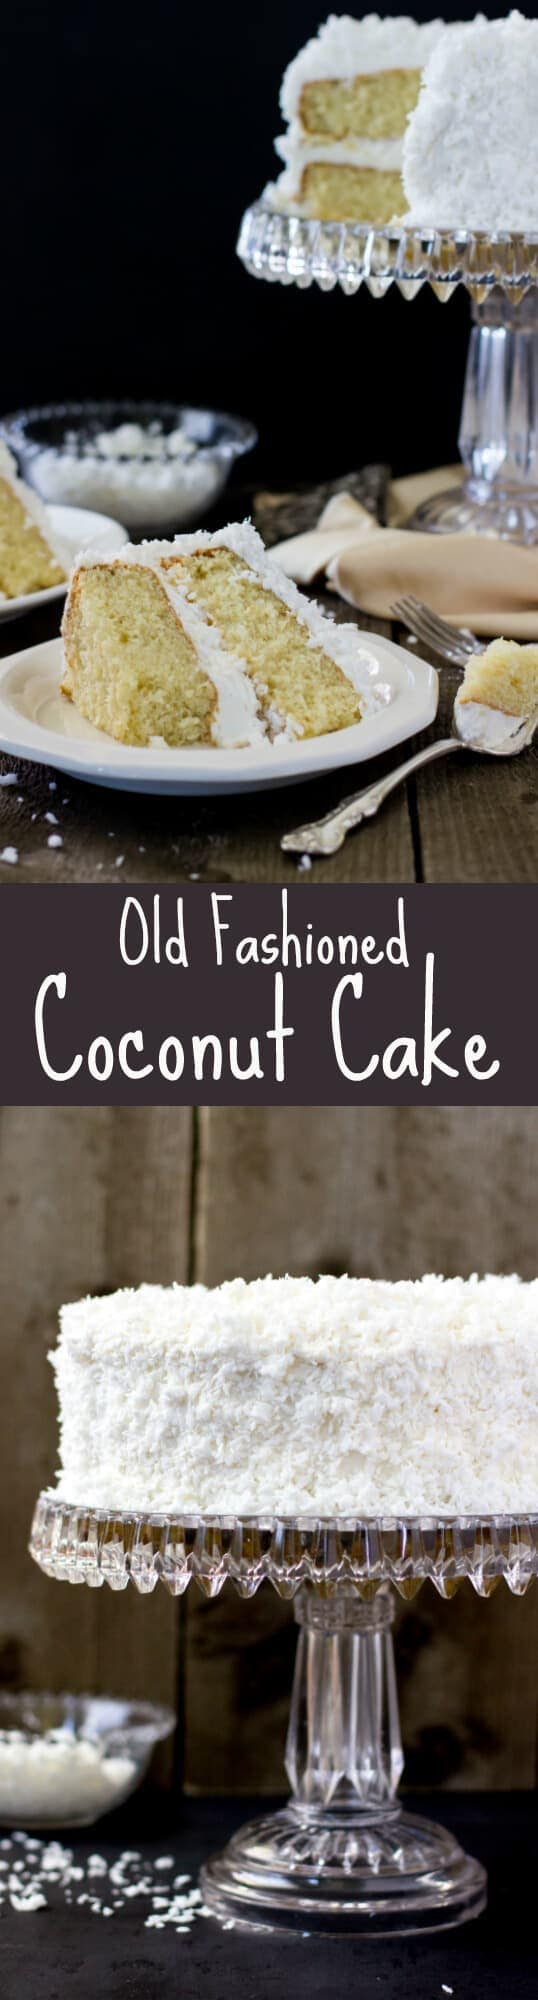 Old Fashioned Coconut Cake -- this is my new favorite coconut cake recipe!